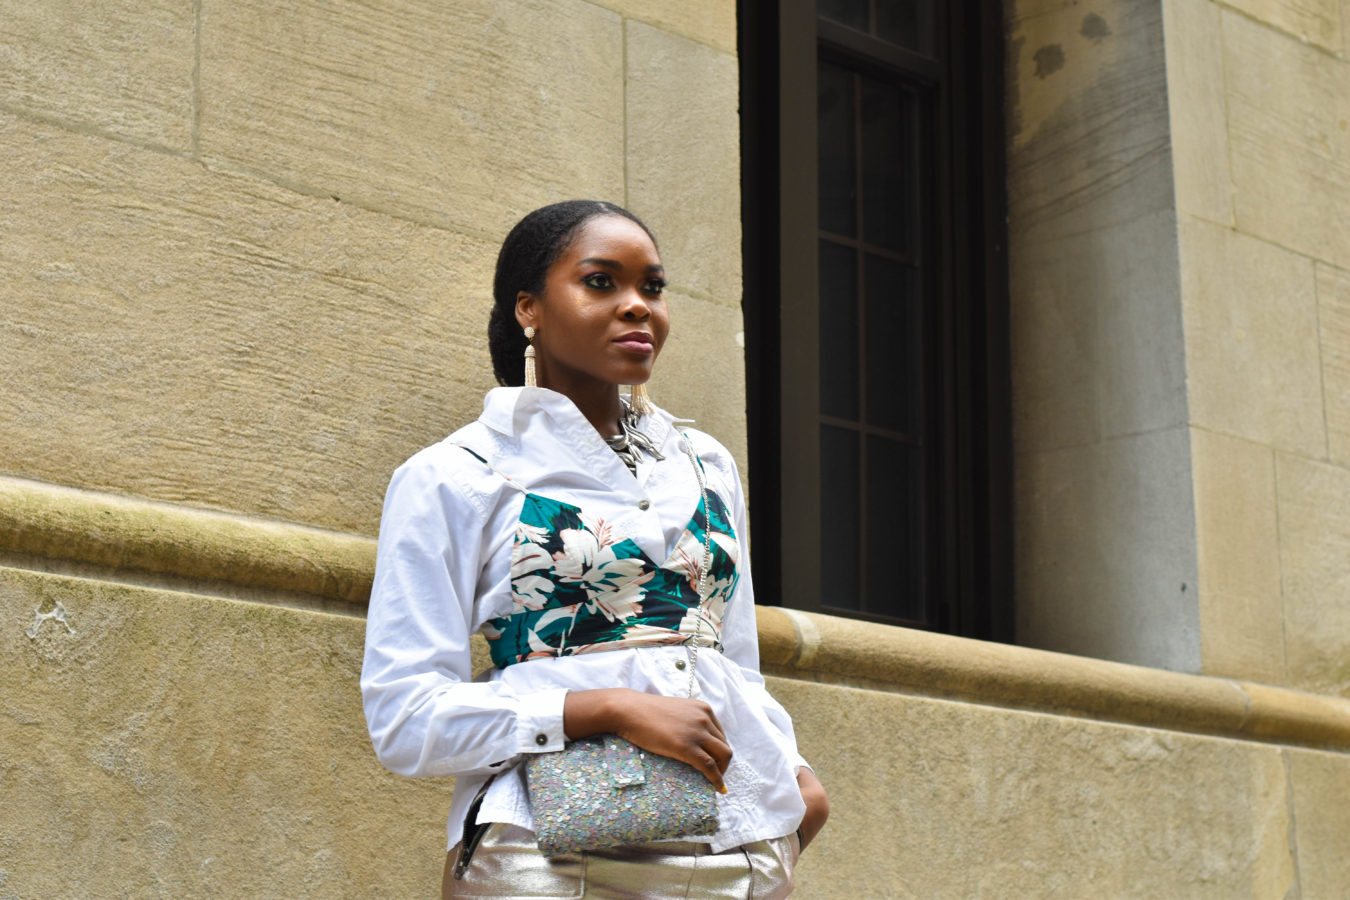 Befitting Style Oyinkan Wearing Spring Layers Crop Top Over Button Down With Simitri Designs Bag